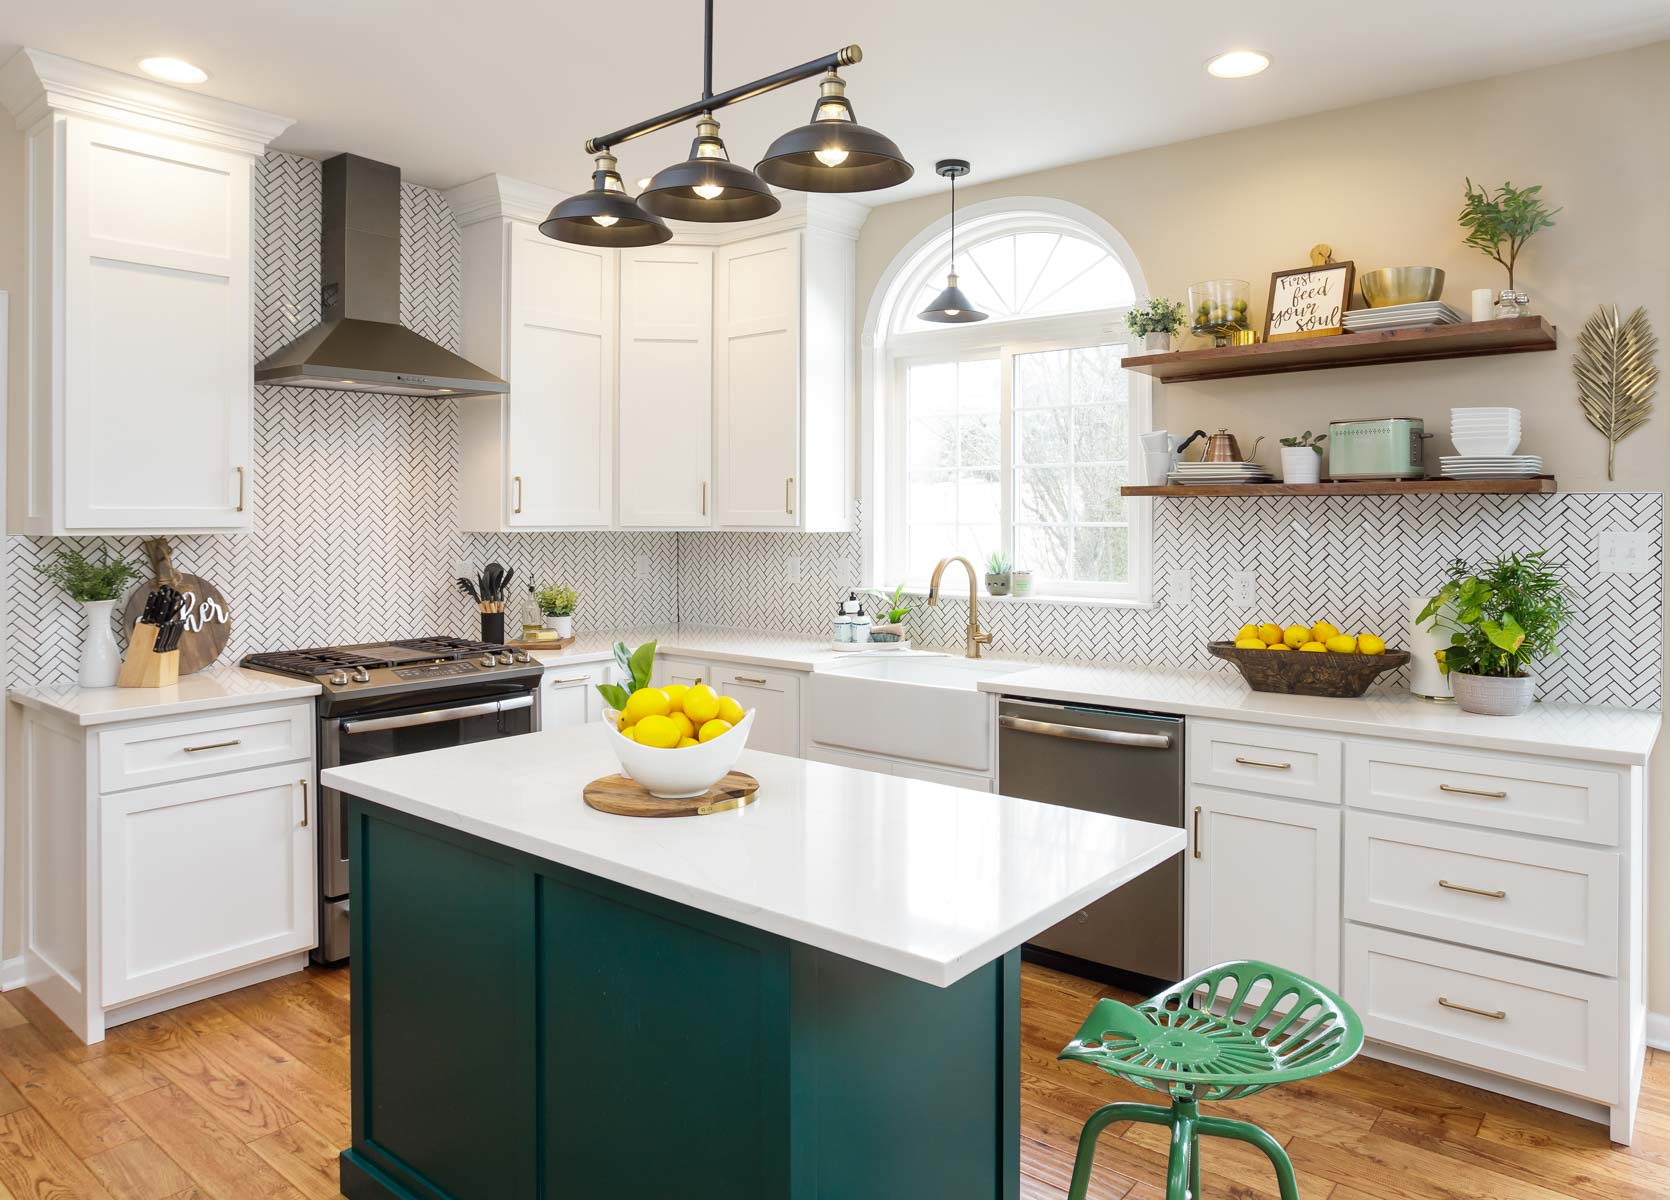 a green kitchen island in a white-painted kitchen